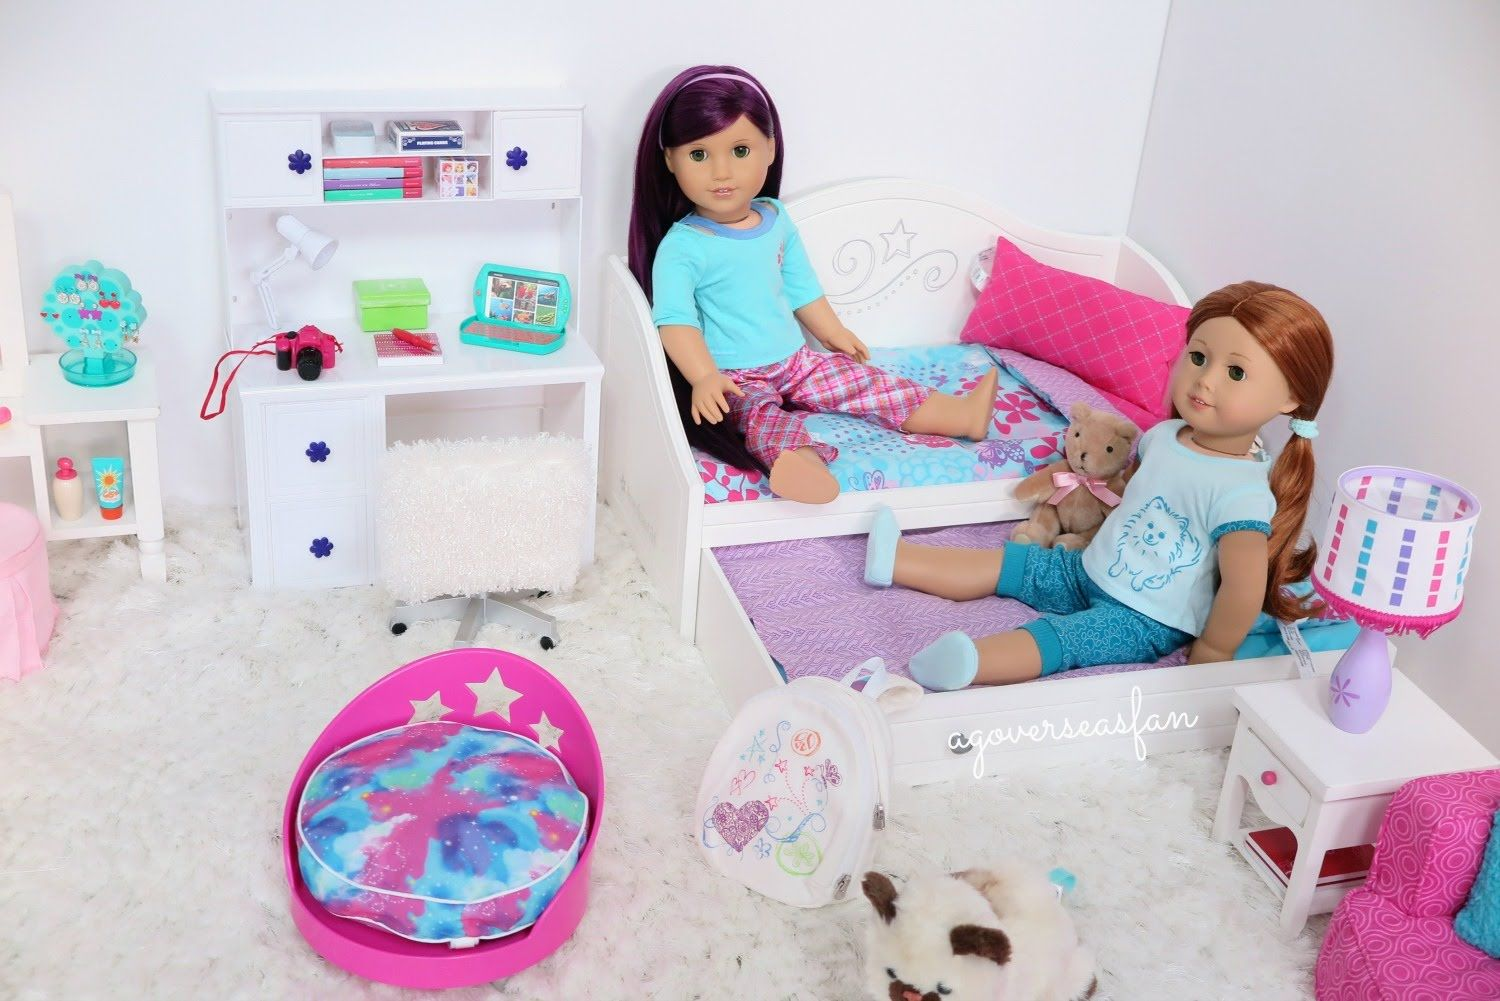 American Girl Doll Bedroom | American girl doll room ...